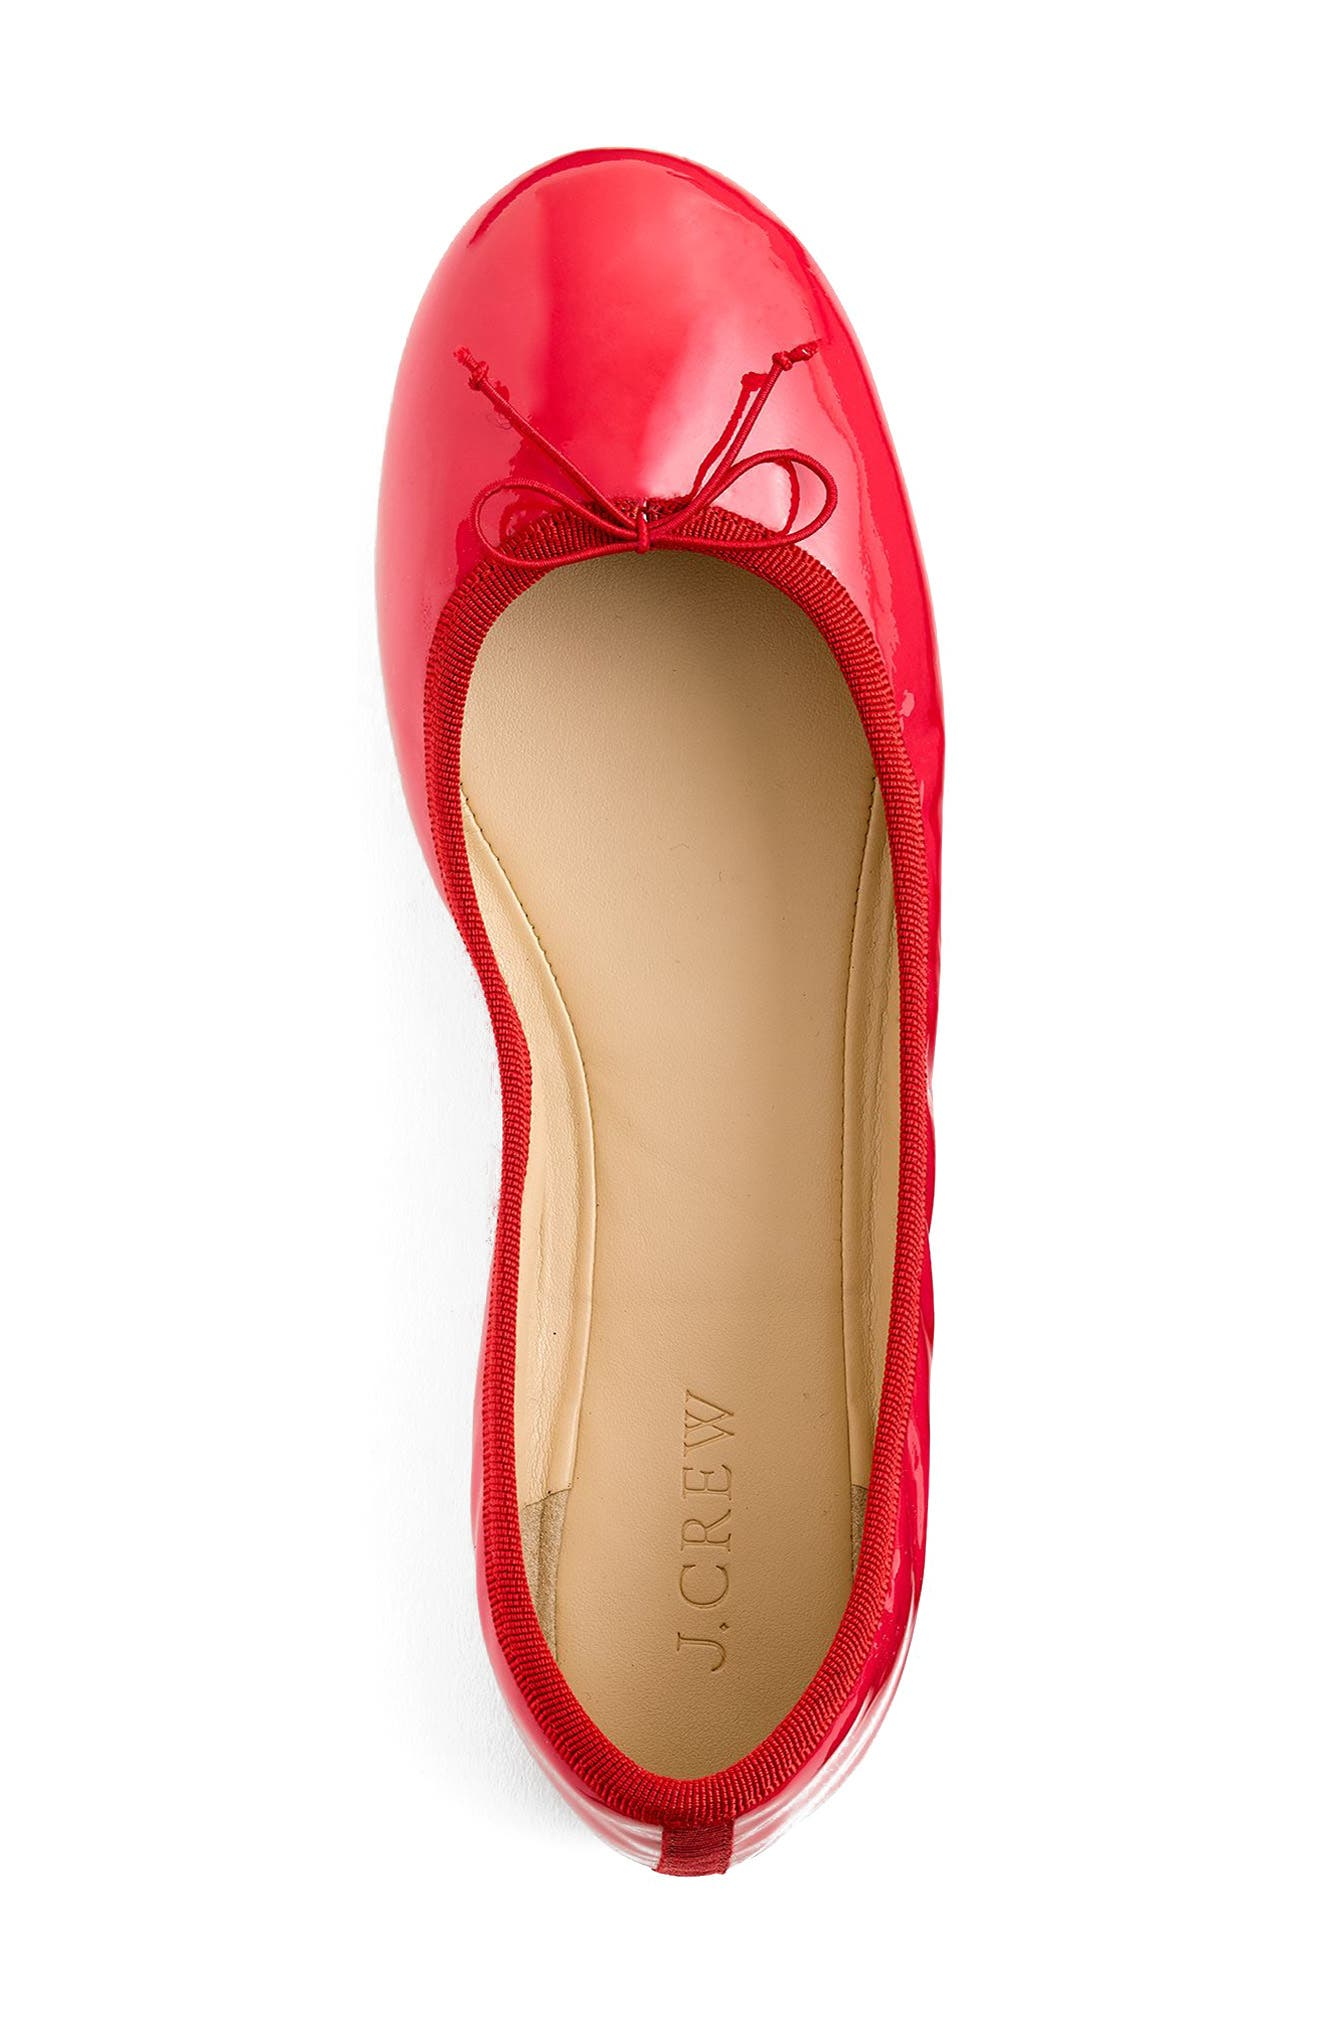 J.Crew Evie Ballet Flat,                             Alternate thumbnail 3, color,                             Providence Red Leather